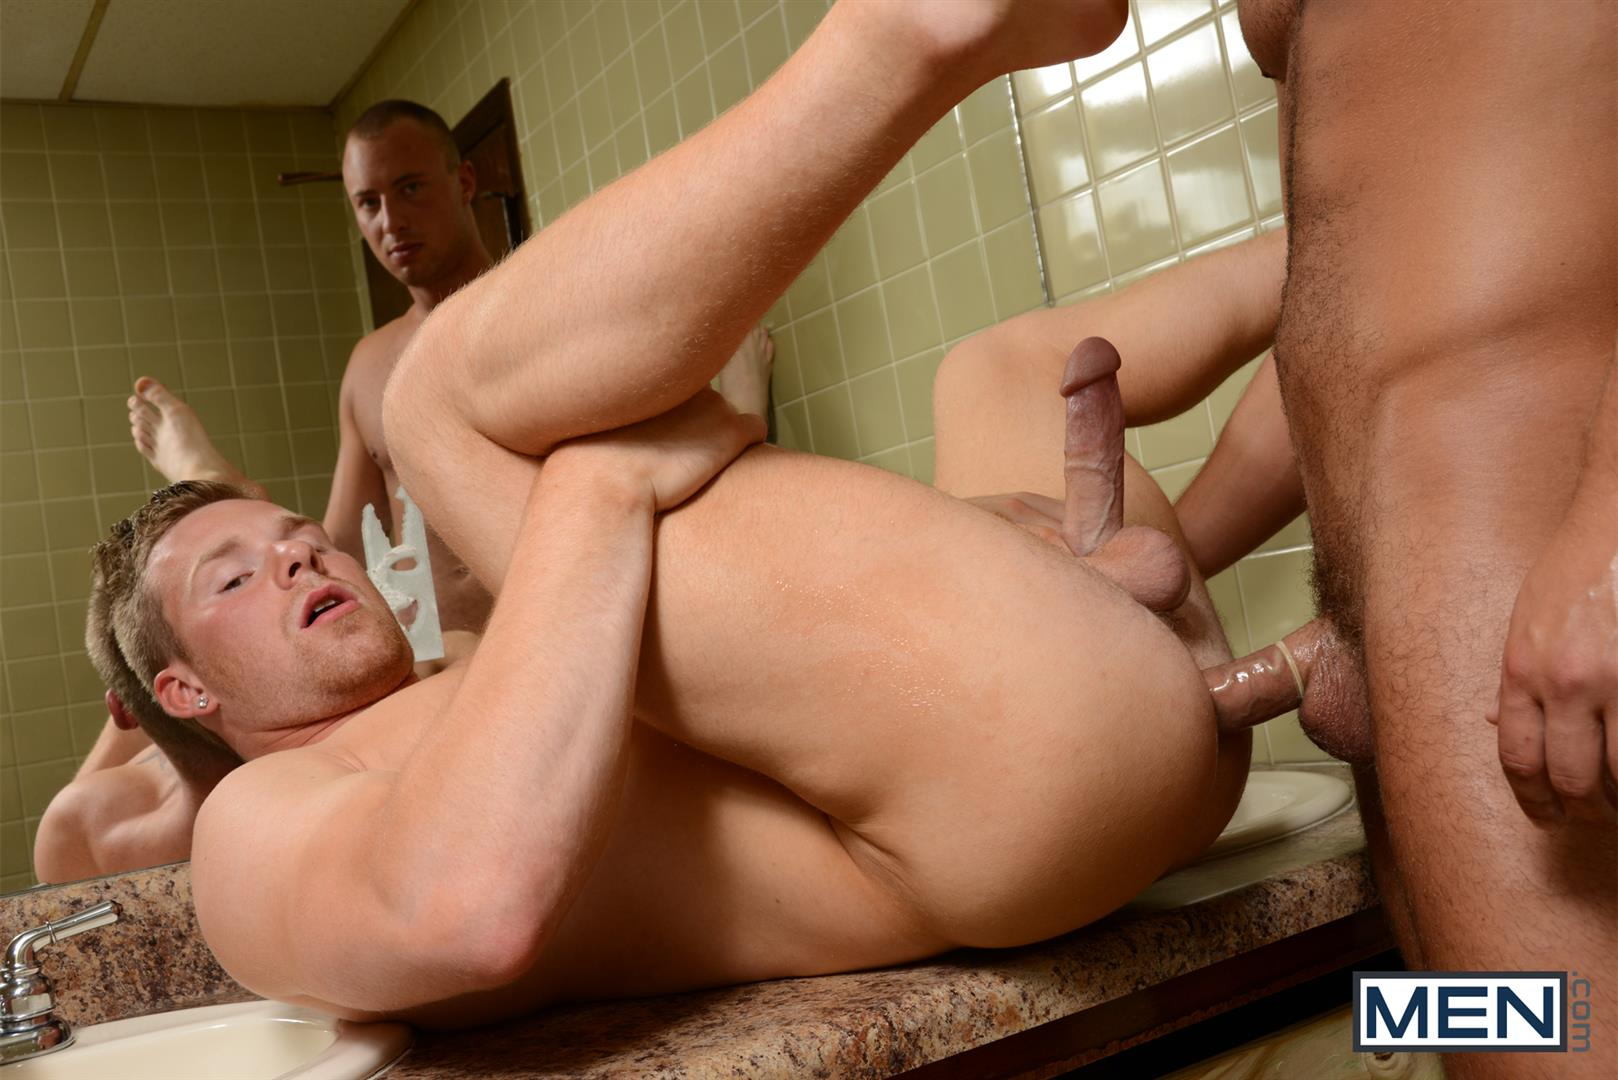 Men.com-Dustin-Tyler-and-Owen-Michaels-Str8-to-Gay-Fucking-In-A-Park-Restroom-Cruising-Amateur-Gay-Porn-10 Straight Guy Gets Fucked In The Ass While Cruising A Park Restroom